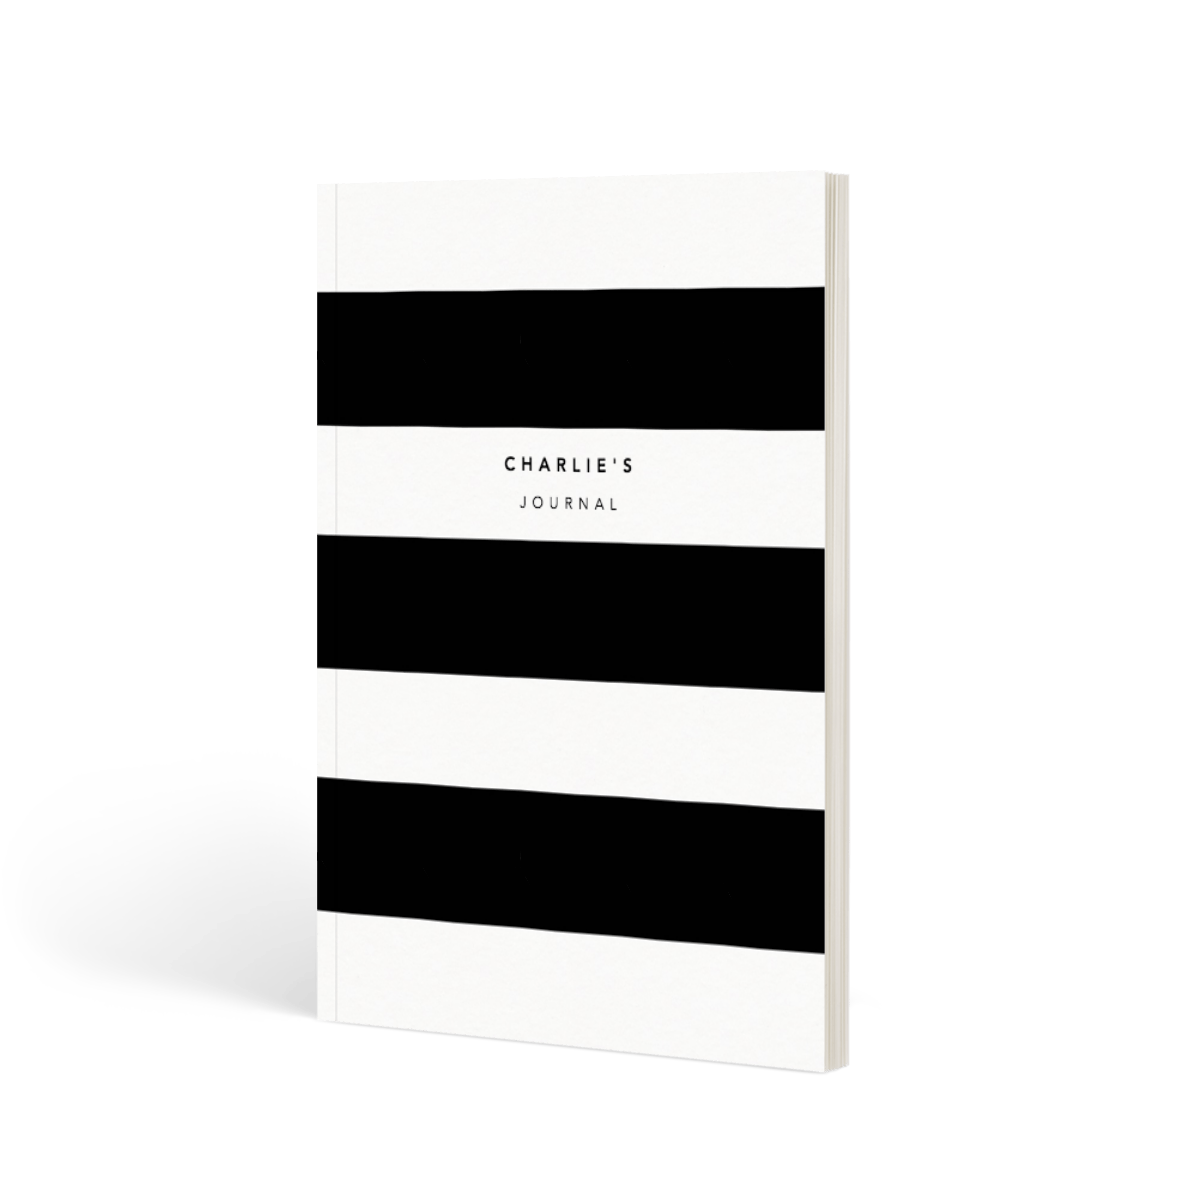 Https%3a%2f%2fwww.papier.com%2fproduct image%2f55998%2f6%2fblack stripe 13454 front 1542369341.png?ixlib=rb 1.1